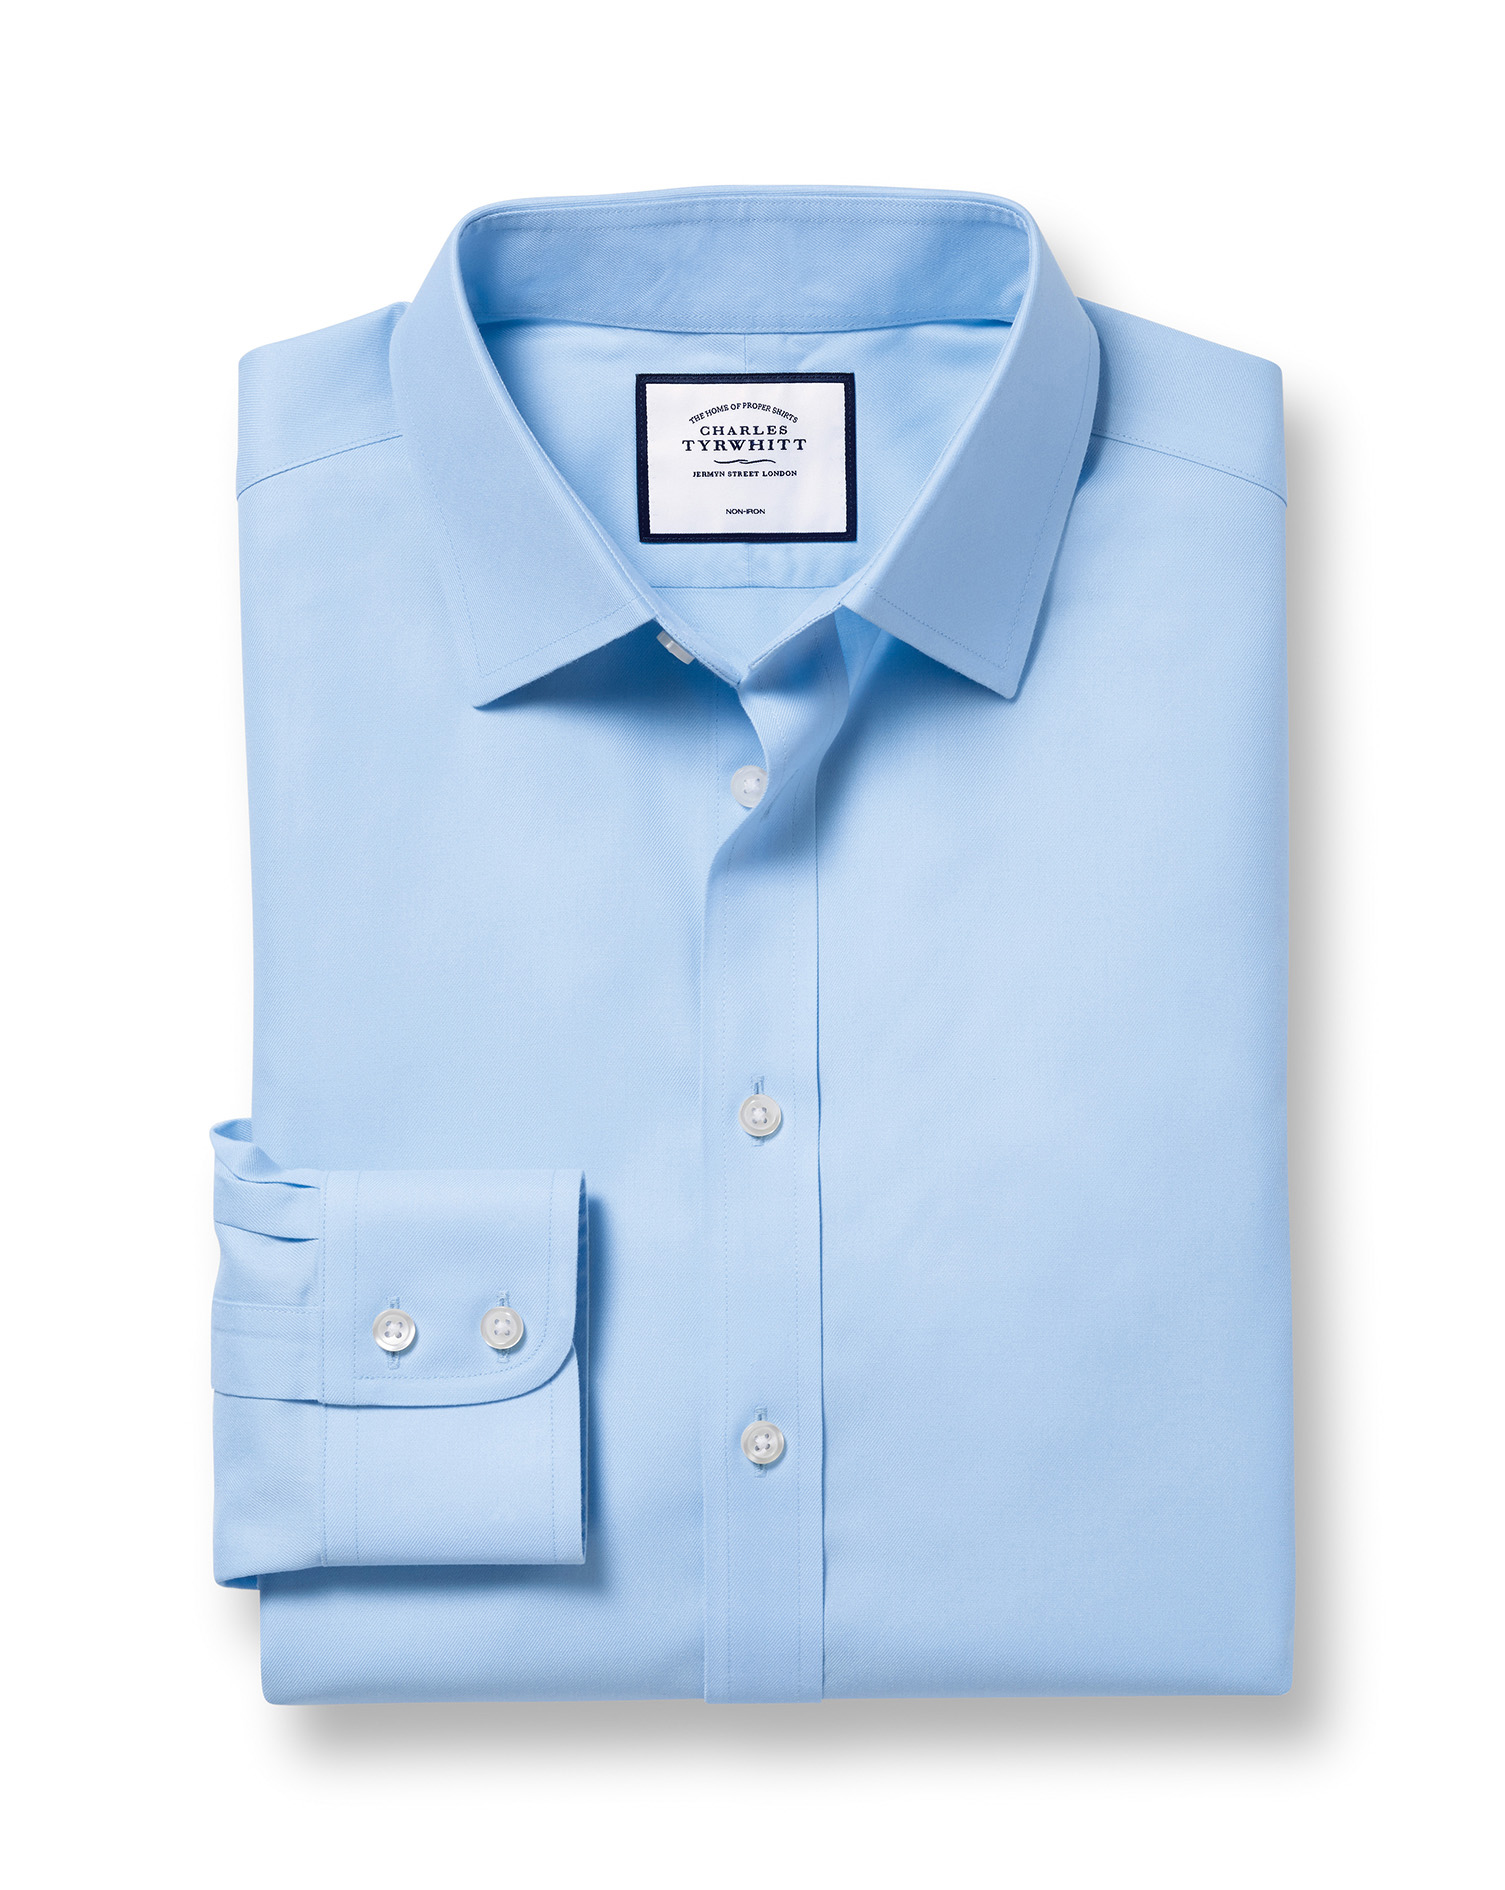 Classic Fit Sky Blue Non-Iron Twill Cotton Formal Shirt by Charles Tyrwhitt